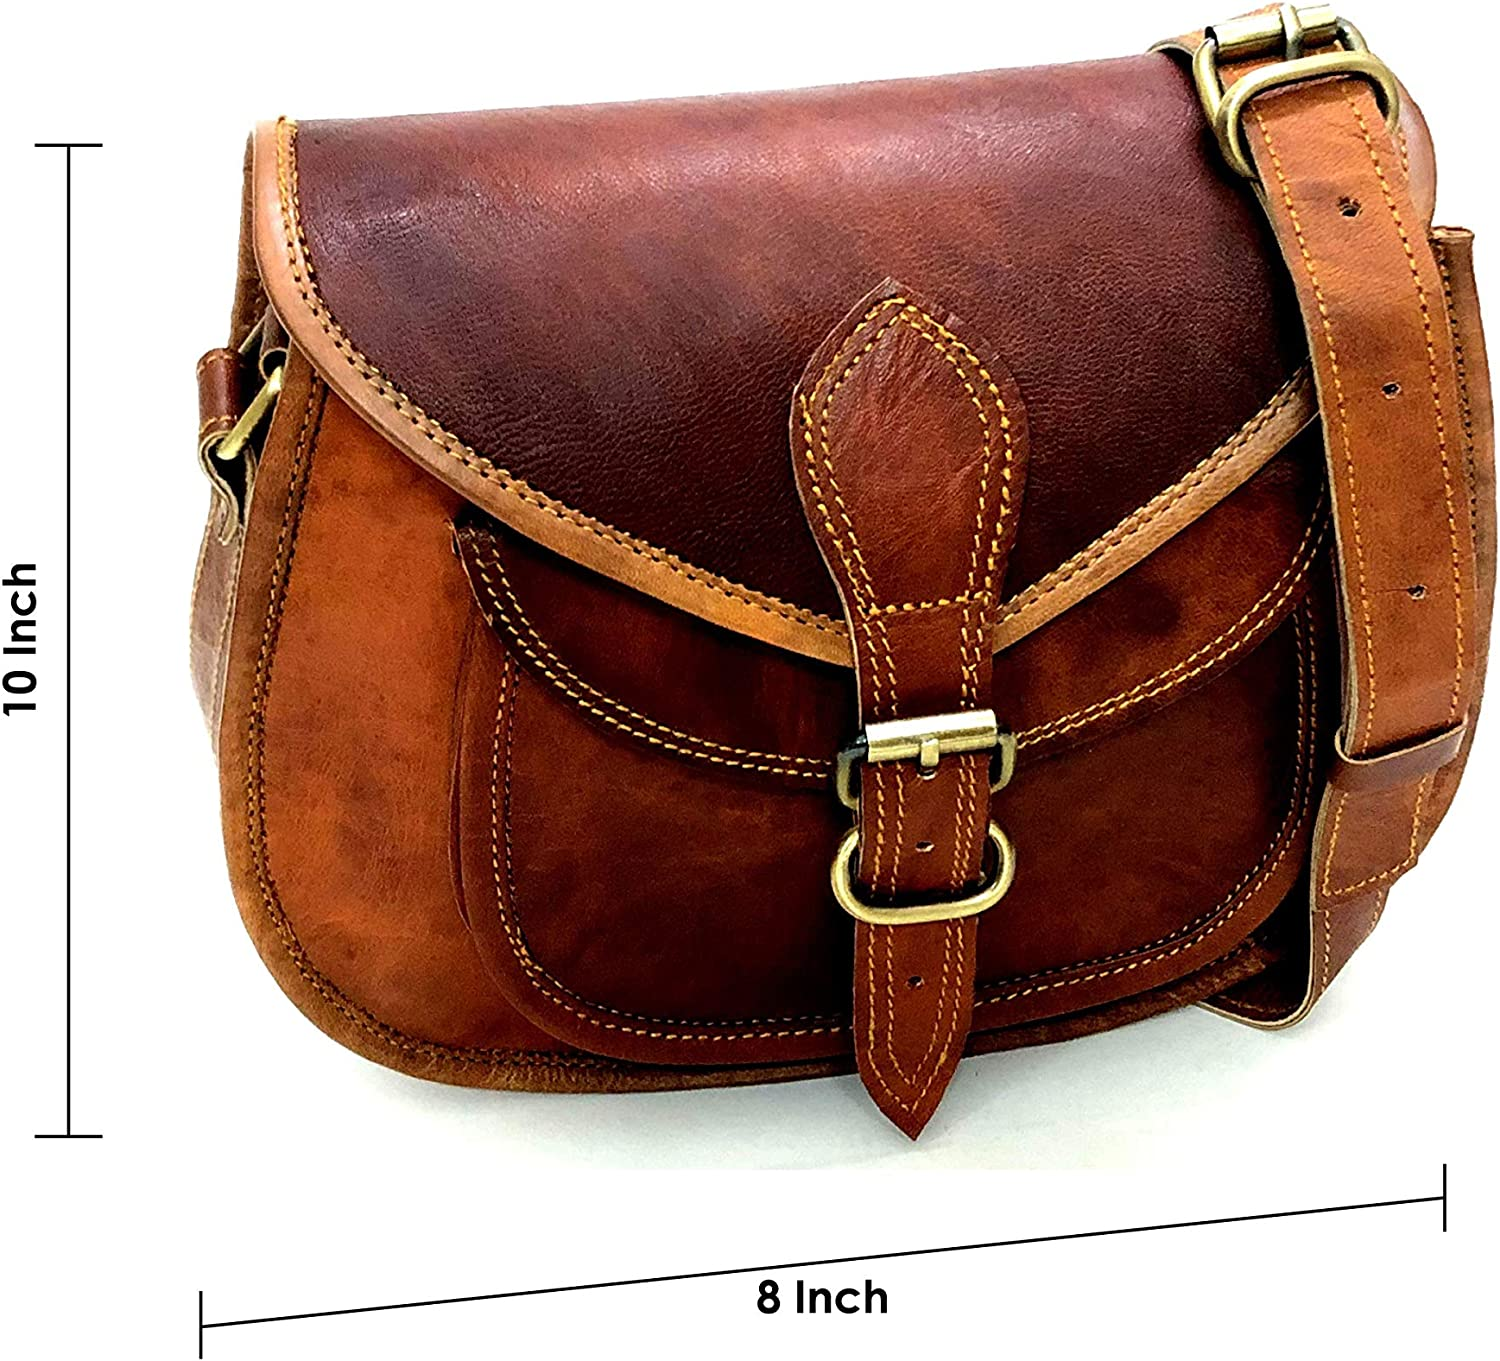 Real leather vintage ladies bag goat hide handbag tote from india for girls